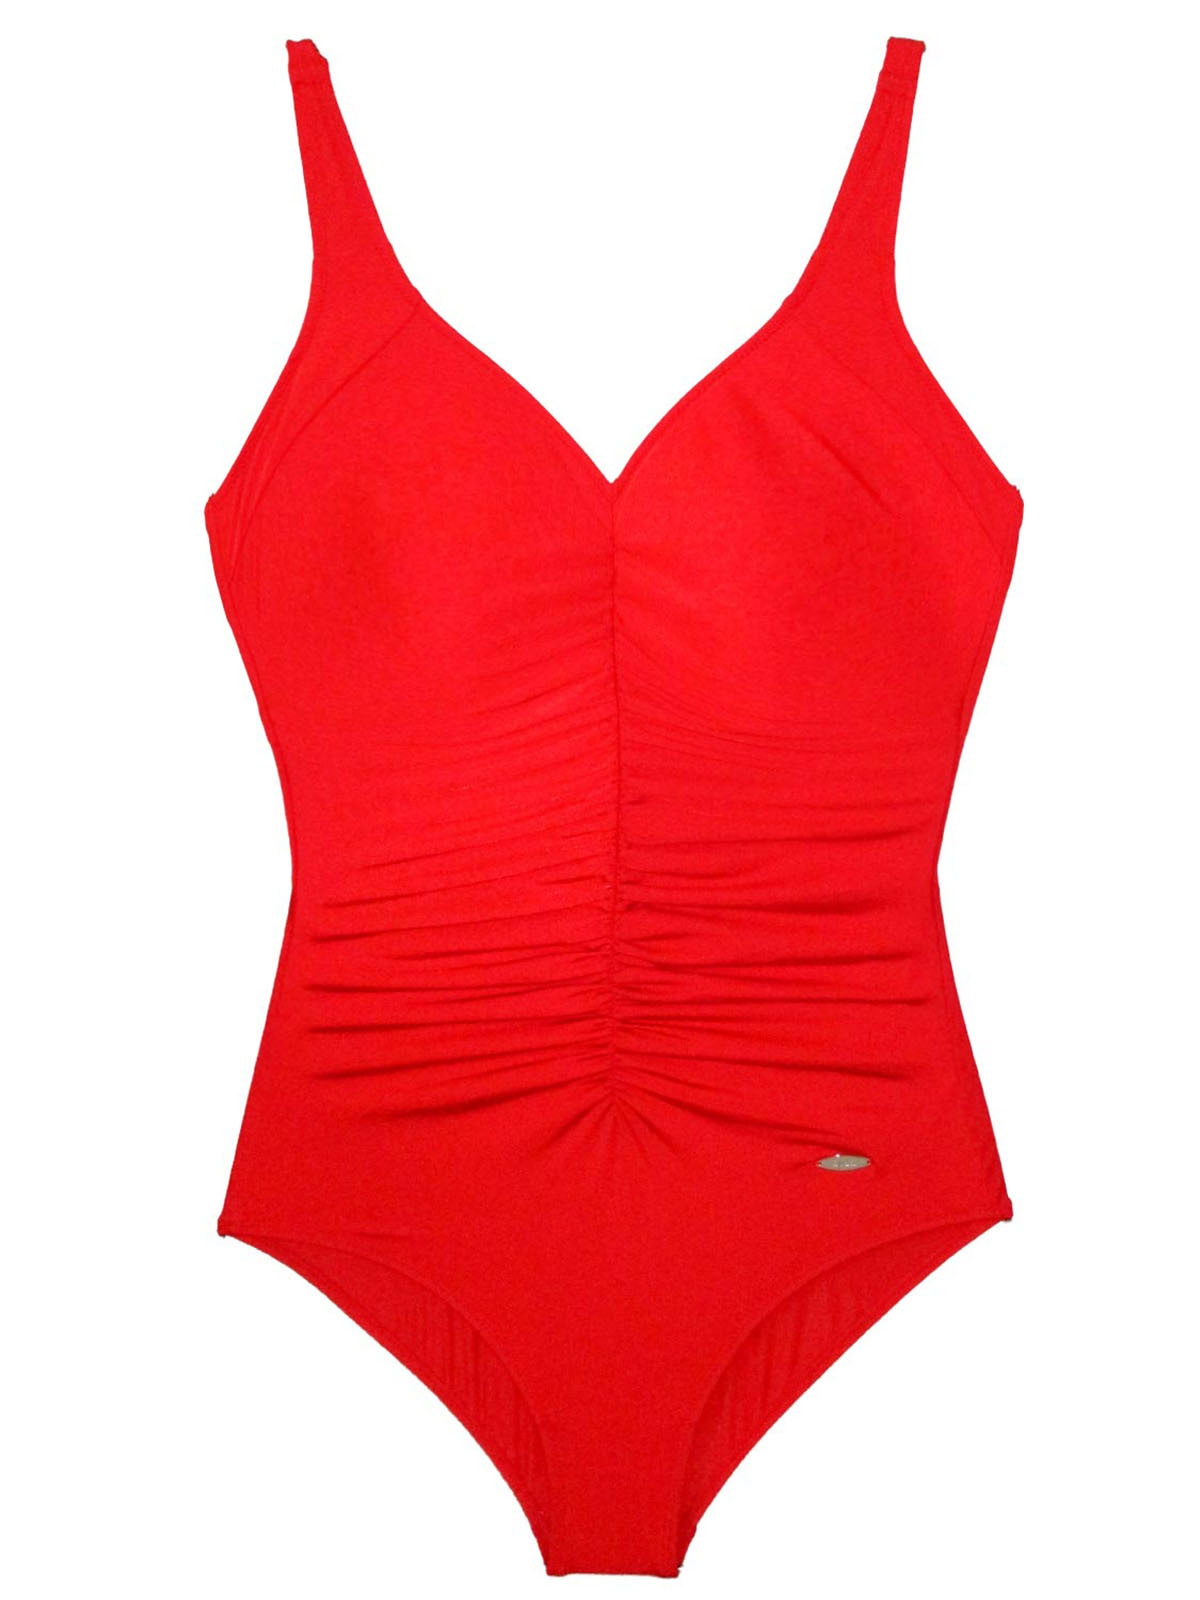 9634b706ab1911 SUSA Prothesen Badeanzug Care 4193 Gr. 38-48 B-D in Rot - Bademode ...